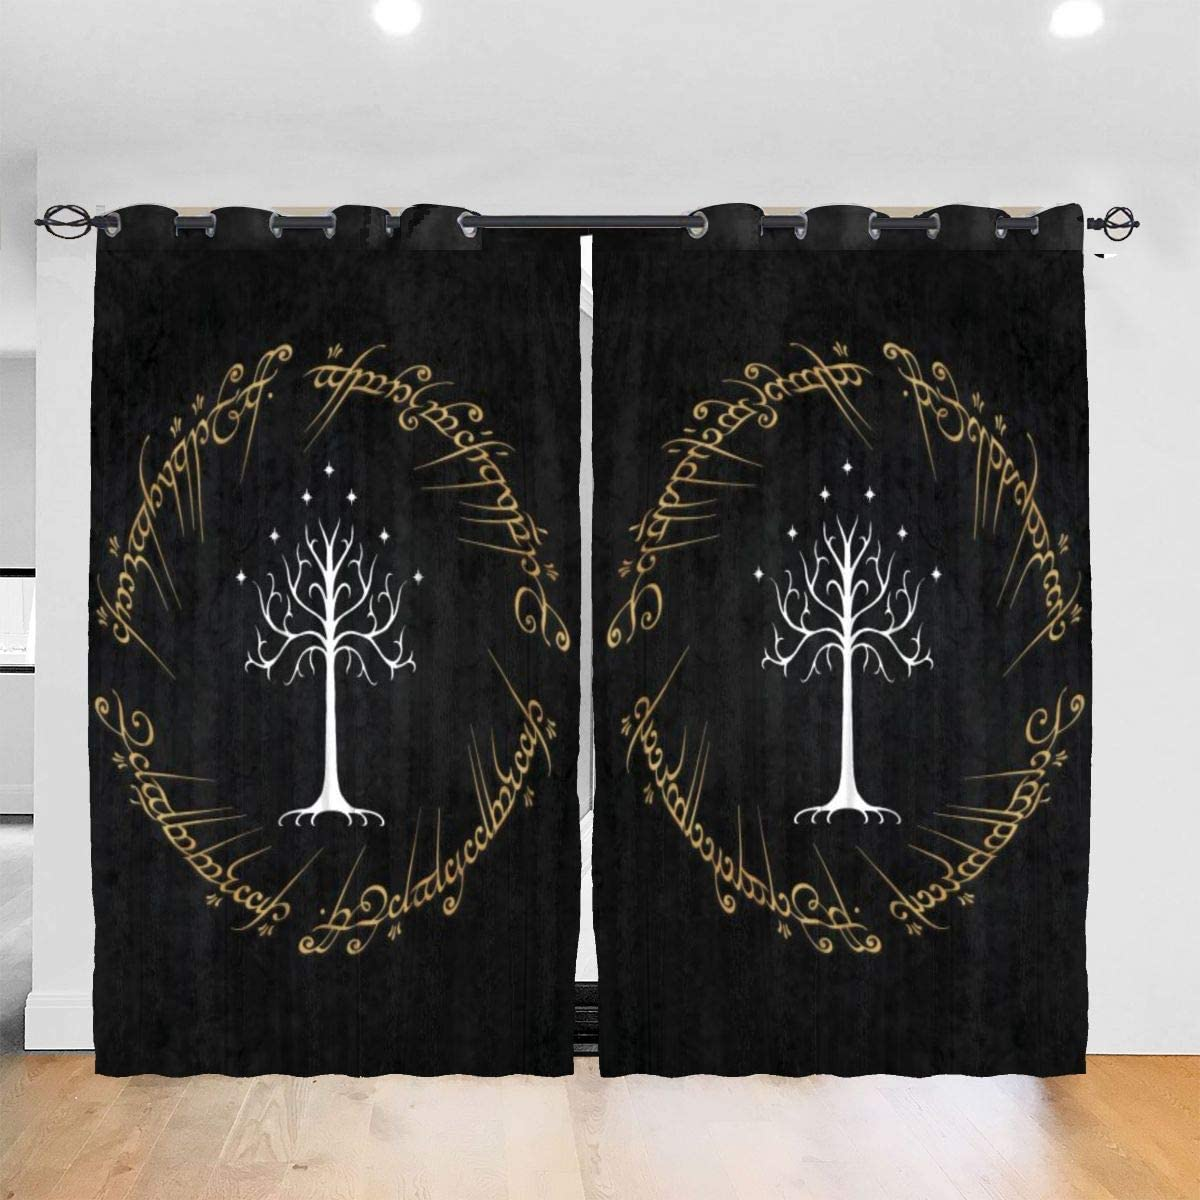 Meroy Fowler Lord Rings Blackout Curtain Set-for Home Decor Living Dining Bedroom Top Insulation Compartment Bedroom Living Room Children's Room 3D Printing-52in W x 72in L(1Pair)